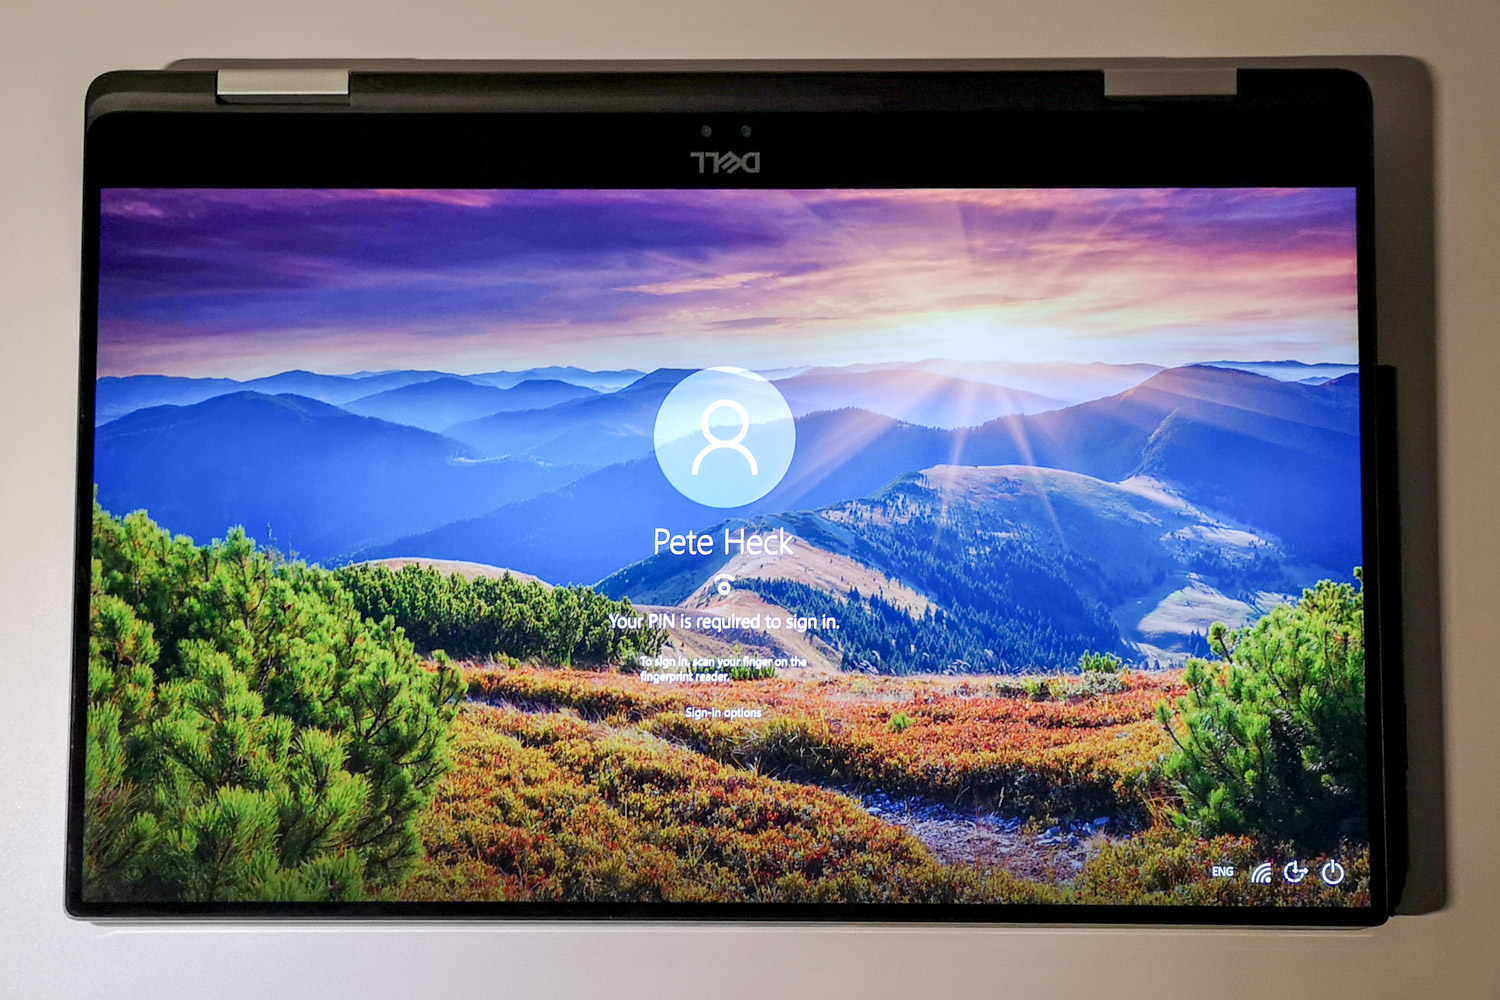 Dell XPS15 2 in 1 Tablet Mode